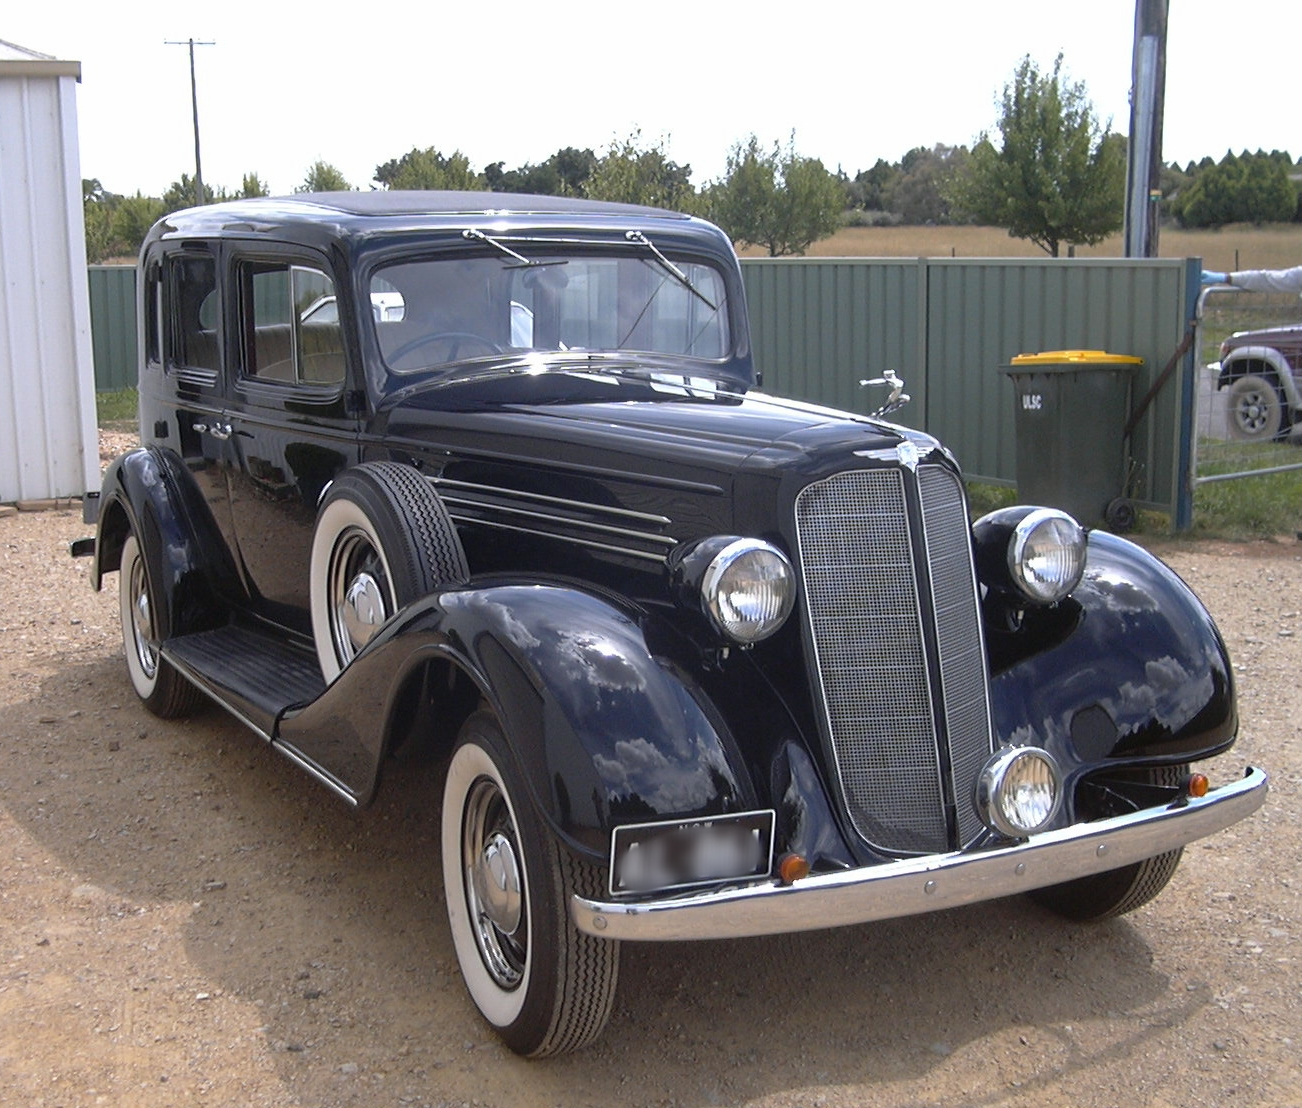 The Buick 1935 was fully restored. The timber frame had minor repairs made to it. The chassis and running gear was completely overhualed.